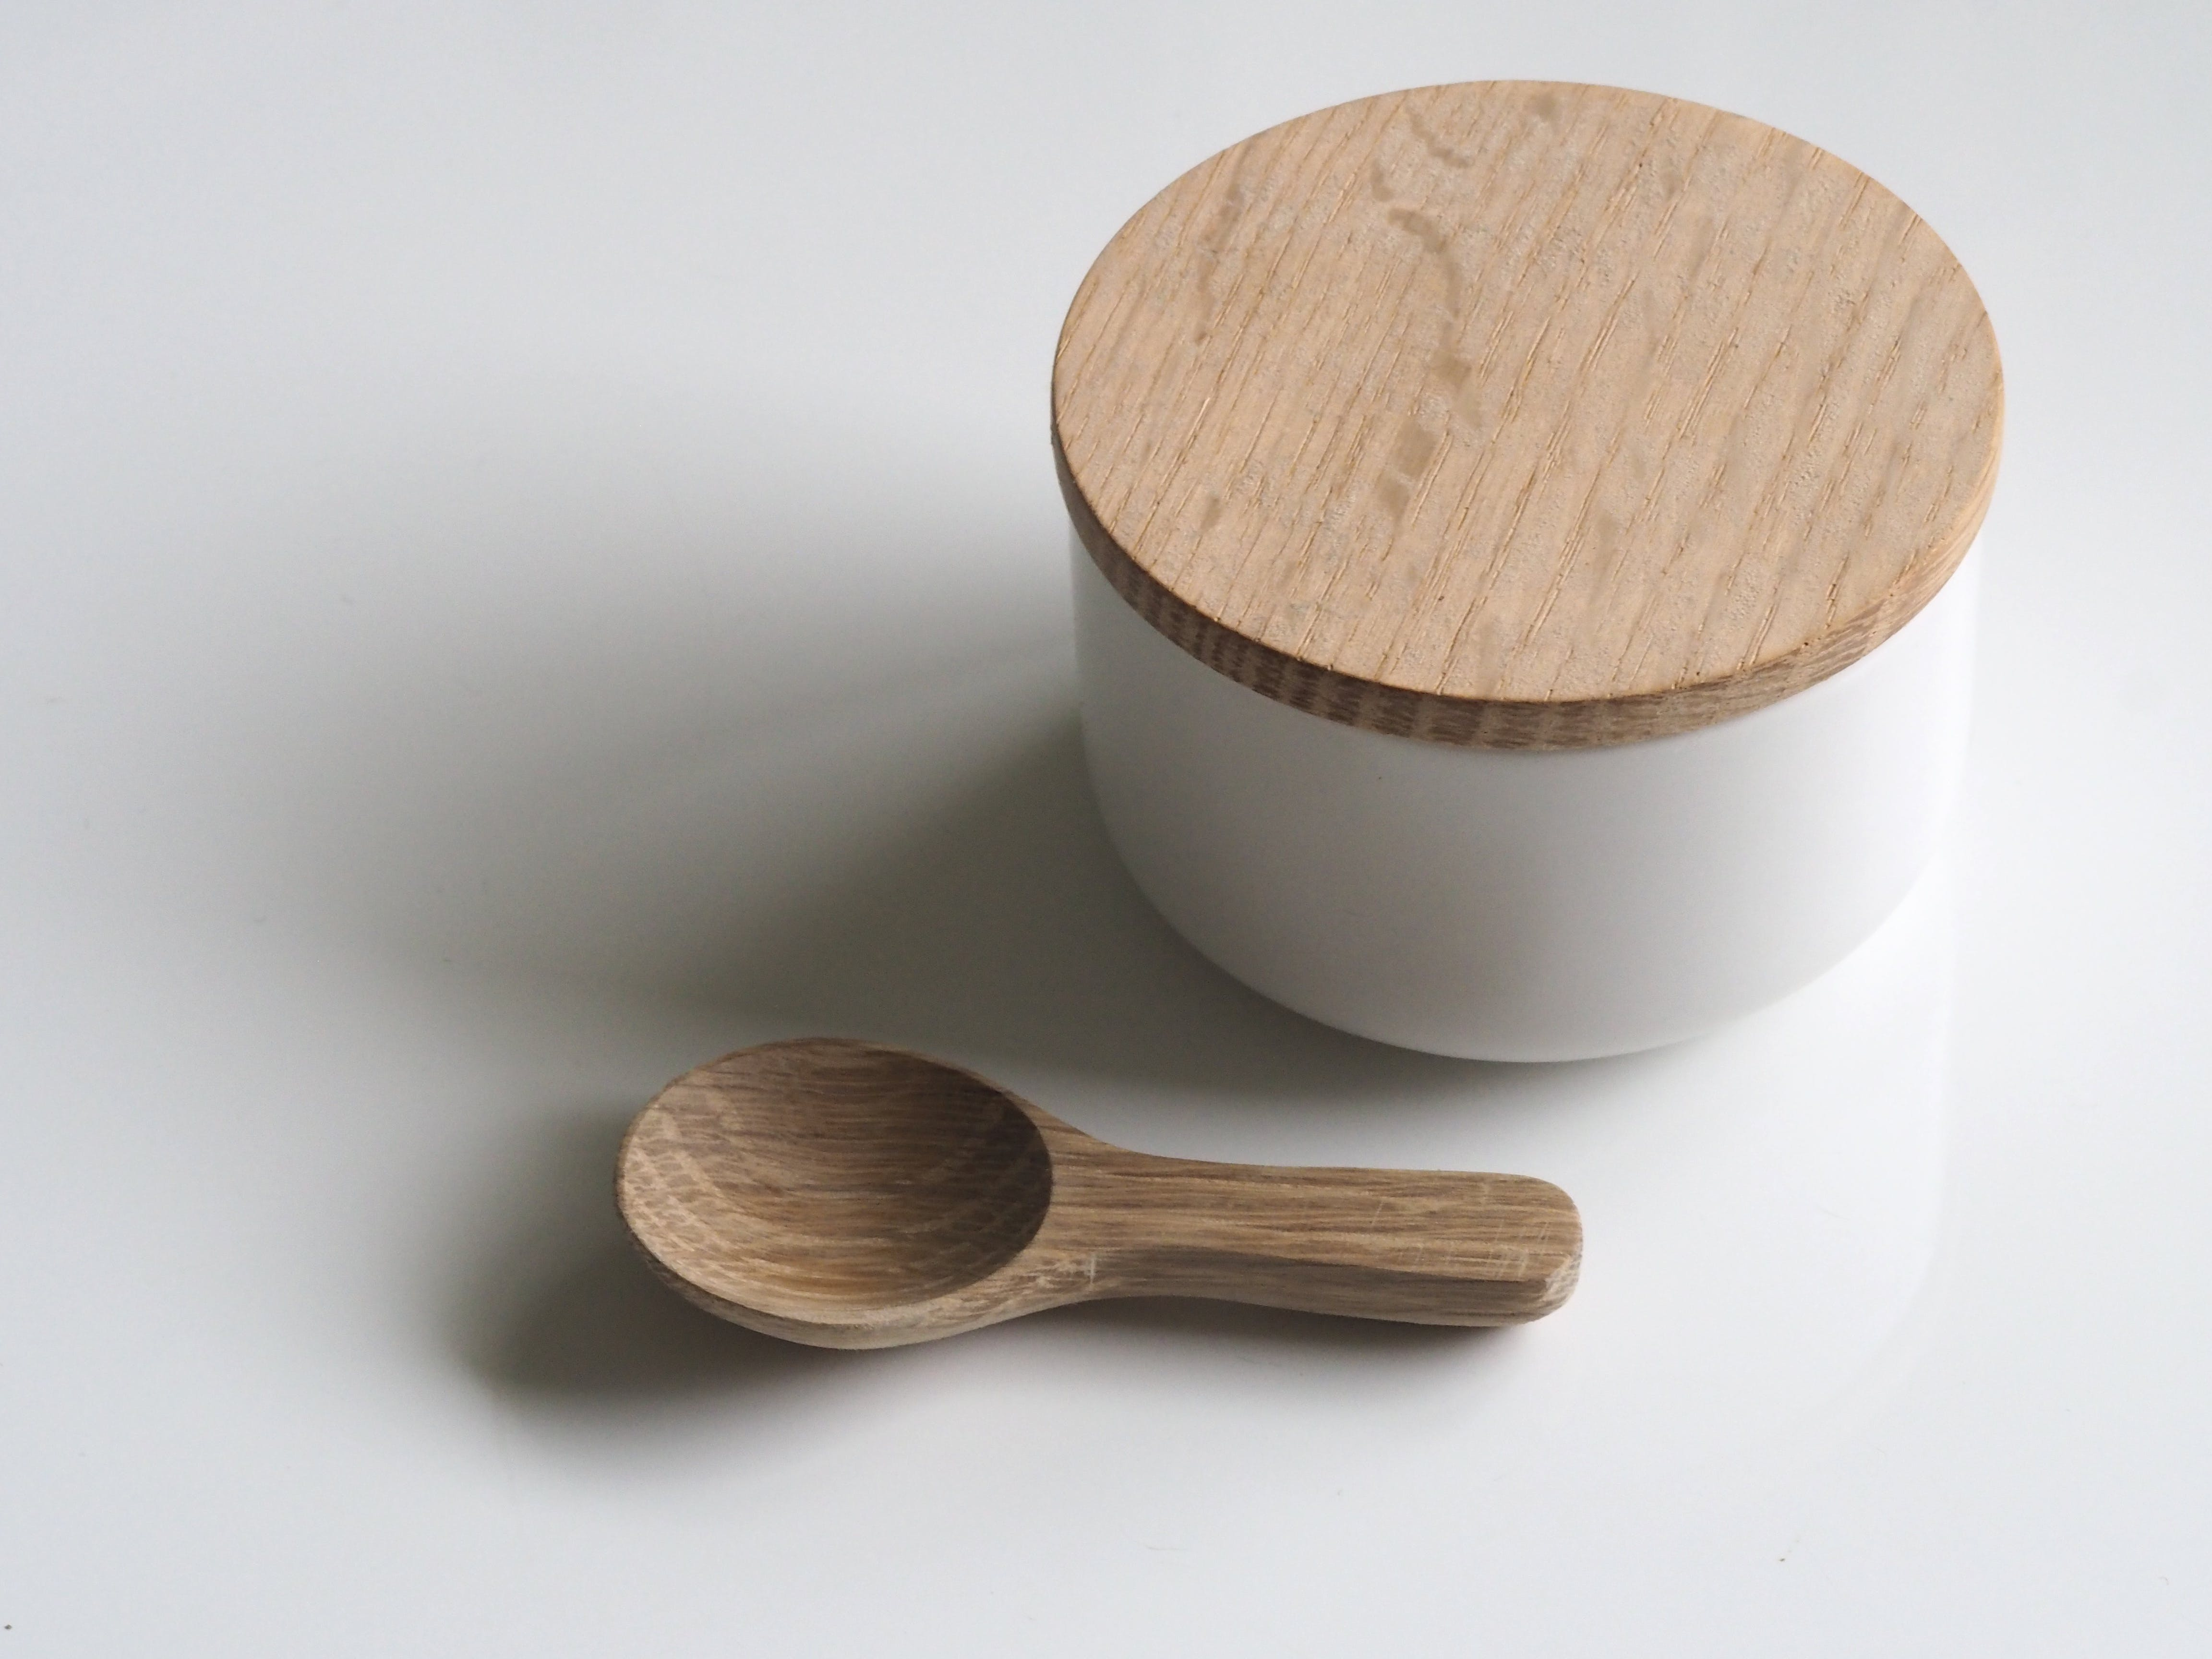 Close-up Photography of White and Brown Wooden Container and Spoon